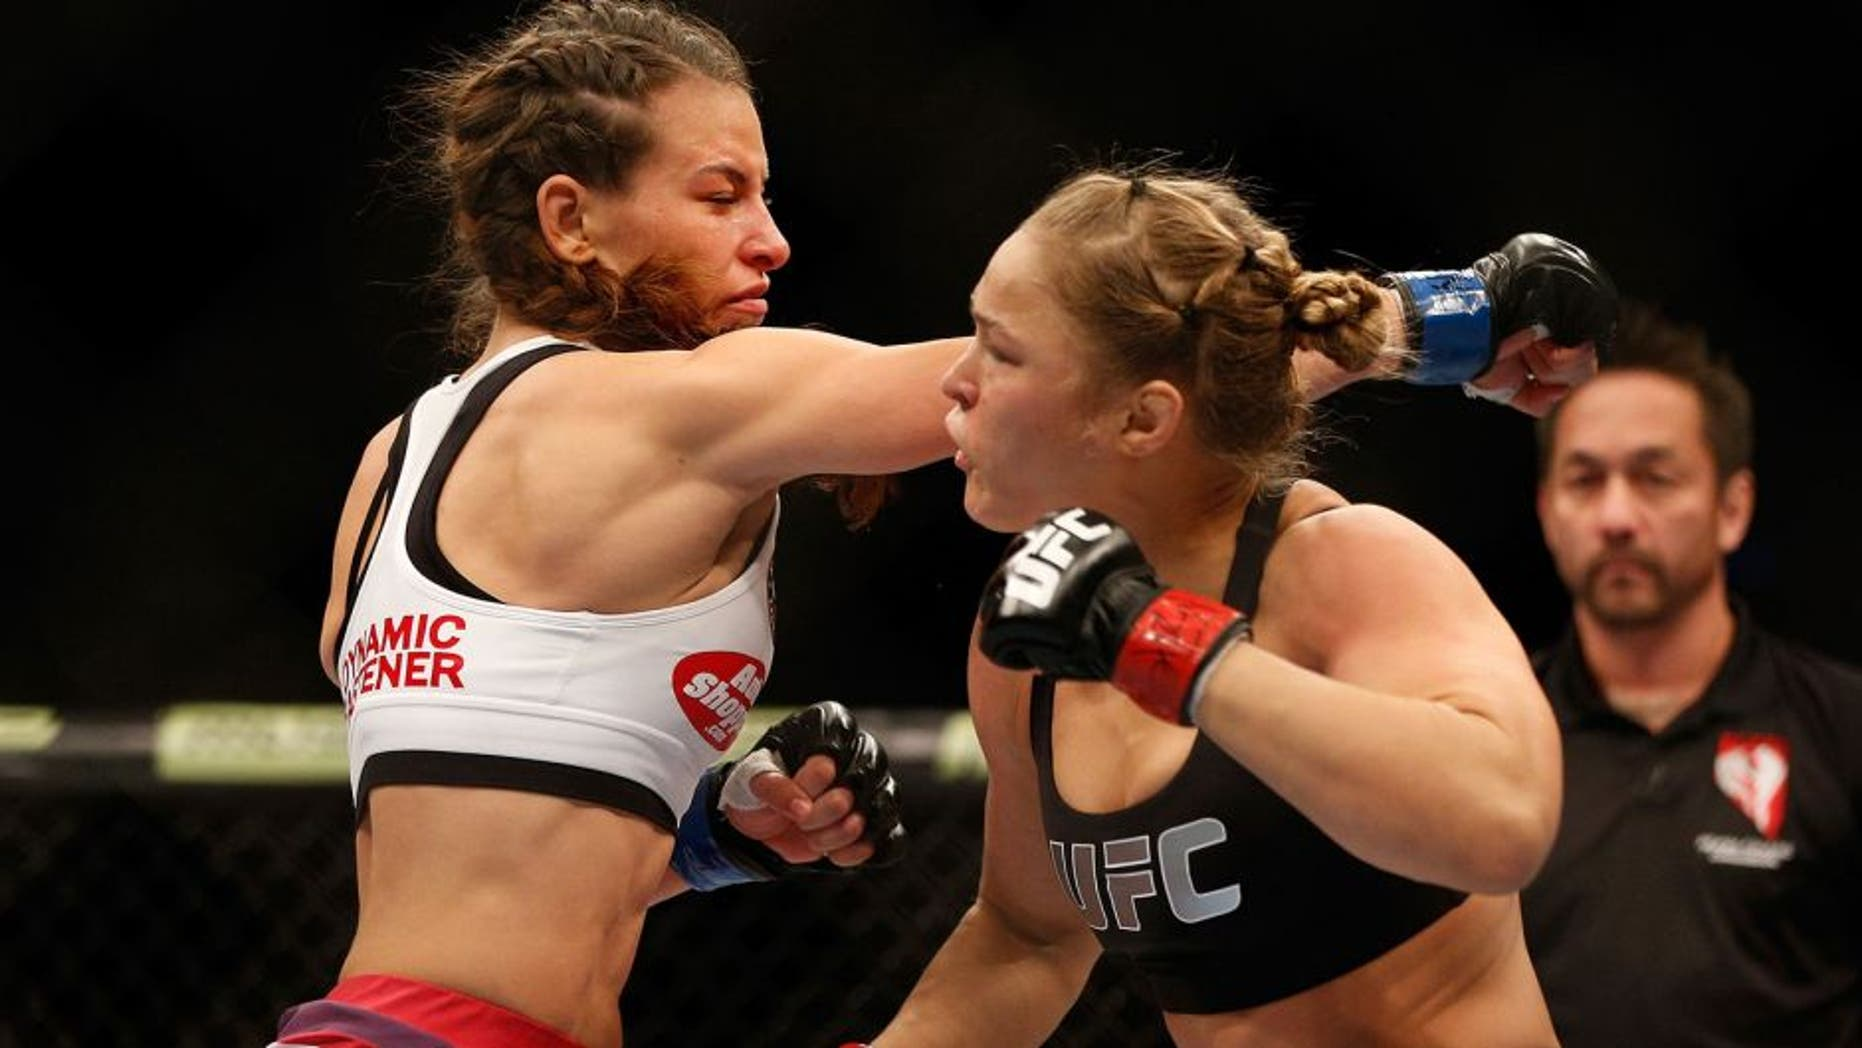 LAS VEGAS, NV - DECEMBER 28: (L-R) Miesha Tate punches Ronda Rousey in their UFC women's bantamweight championship bout during the UFC 168 event at the MGM Grand Garden Arena on December 28, 2013 in Las Vegas, Nevada. (Photo by Josh Hedges/Zuffa LLC/Zuffa LLC via Getty Images) *** Local Caption *** Ronda Rousey; Miesha Tate